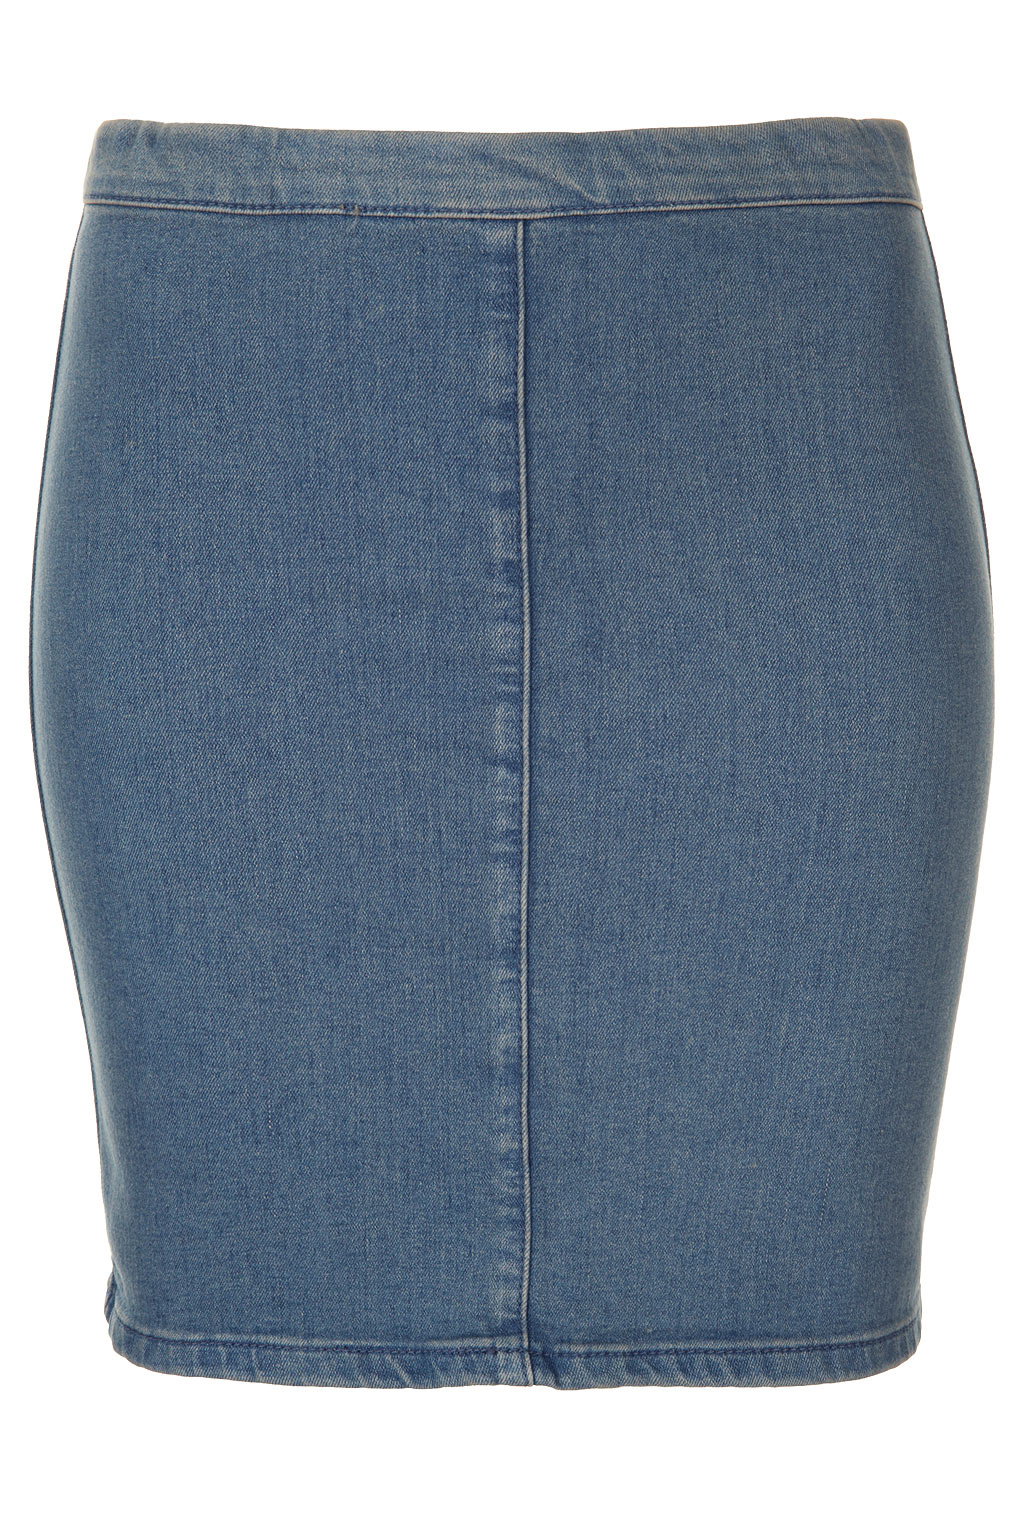 Topshop Moto Bodycon Denim Skirt in Blue | Lyst